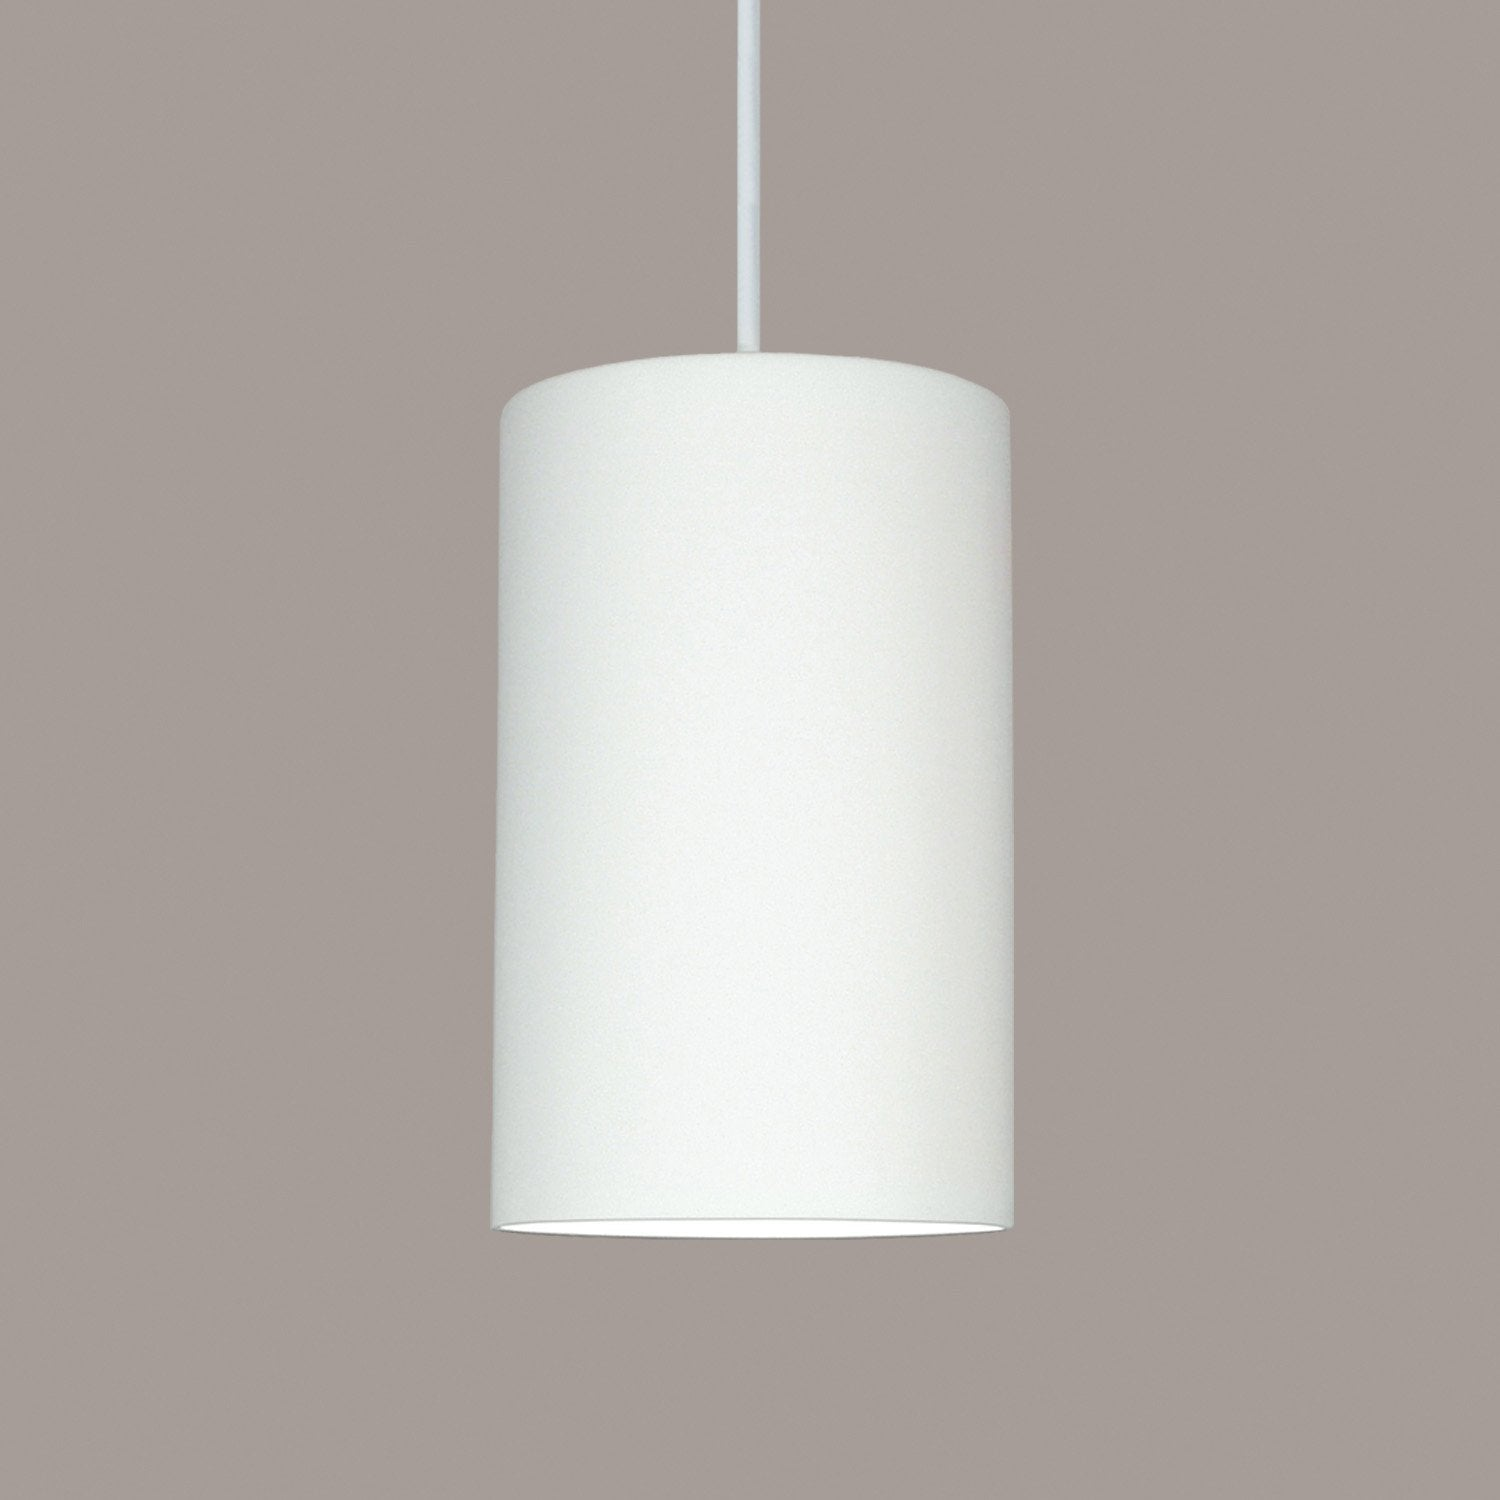 A19 P202-WC-WCC Islands of Light Collection Andros White Crackle Finish Pendant from A19